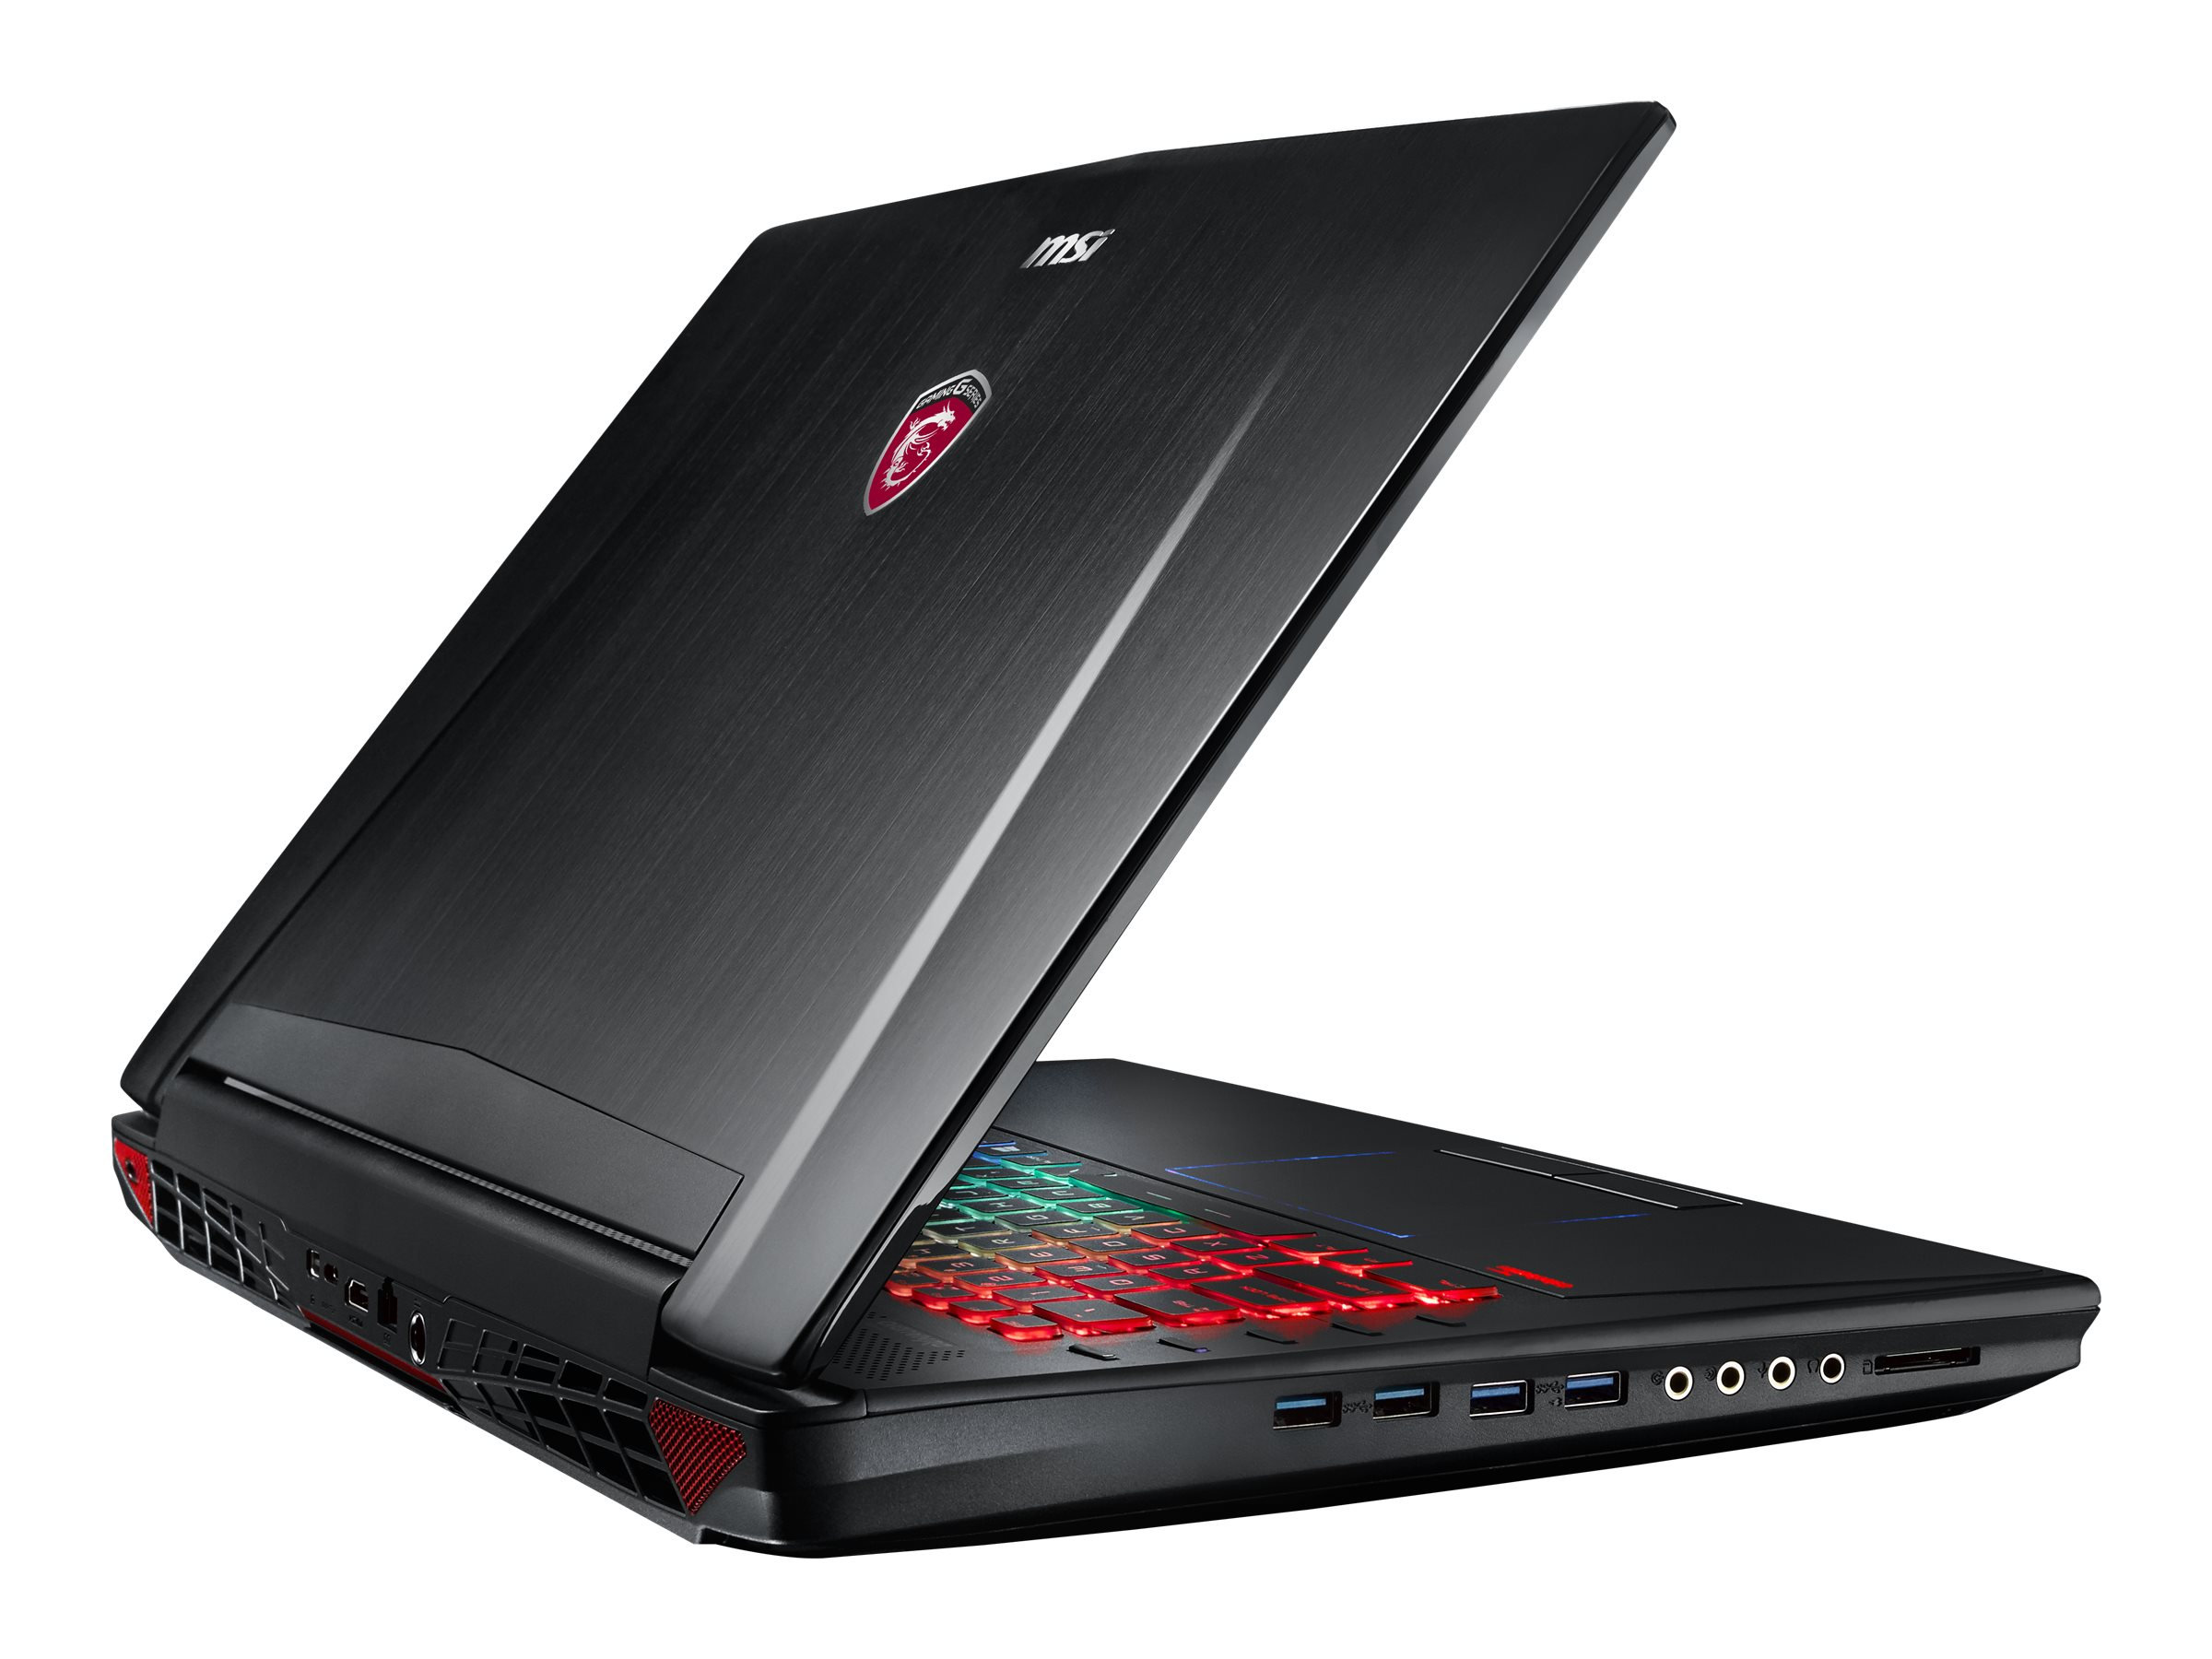 MSI Computer GT72VR257 Image 7